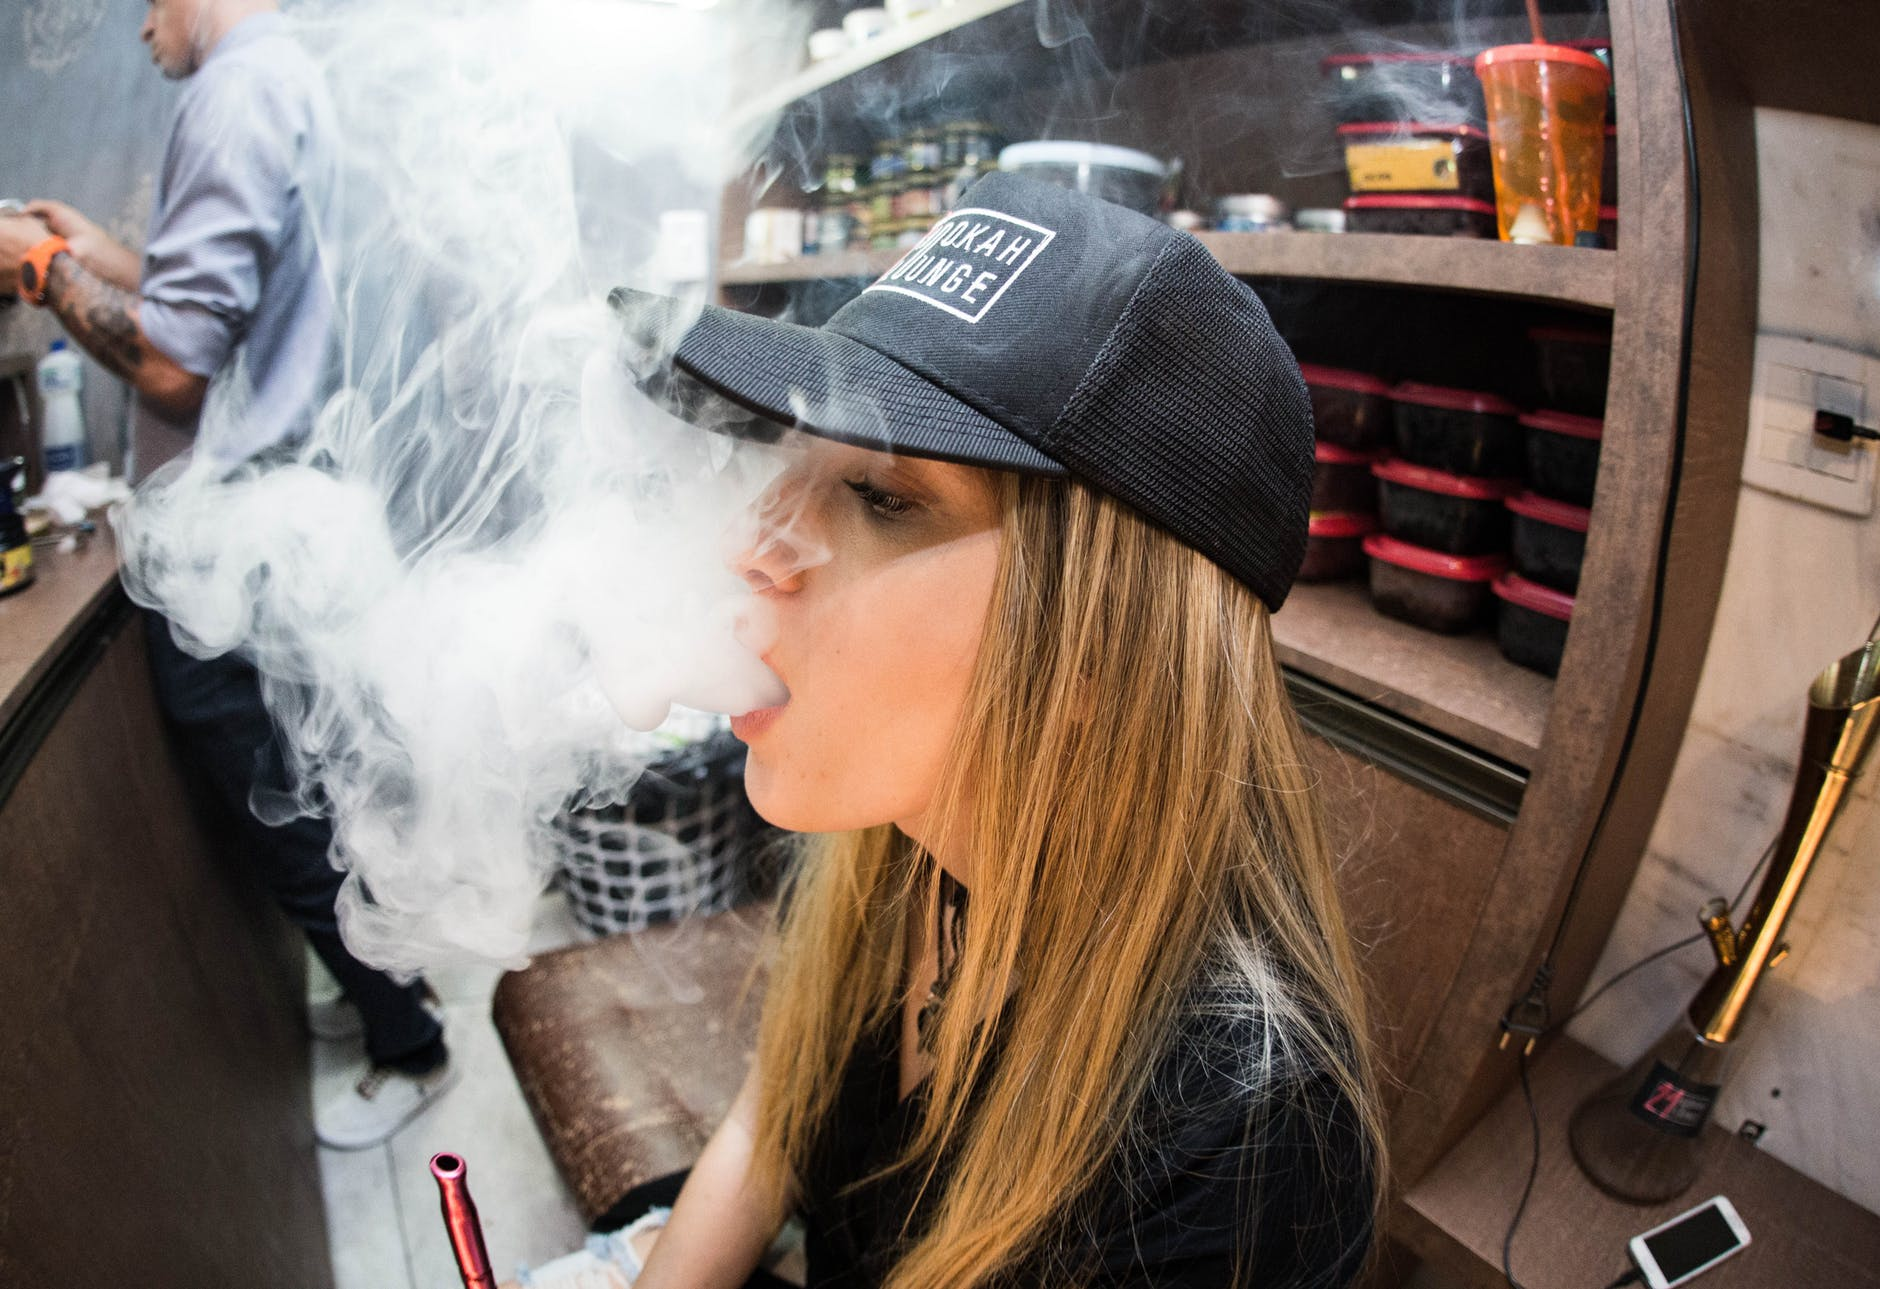 Pros & Cons Of Vaporizers